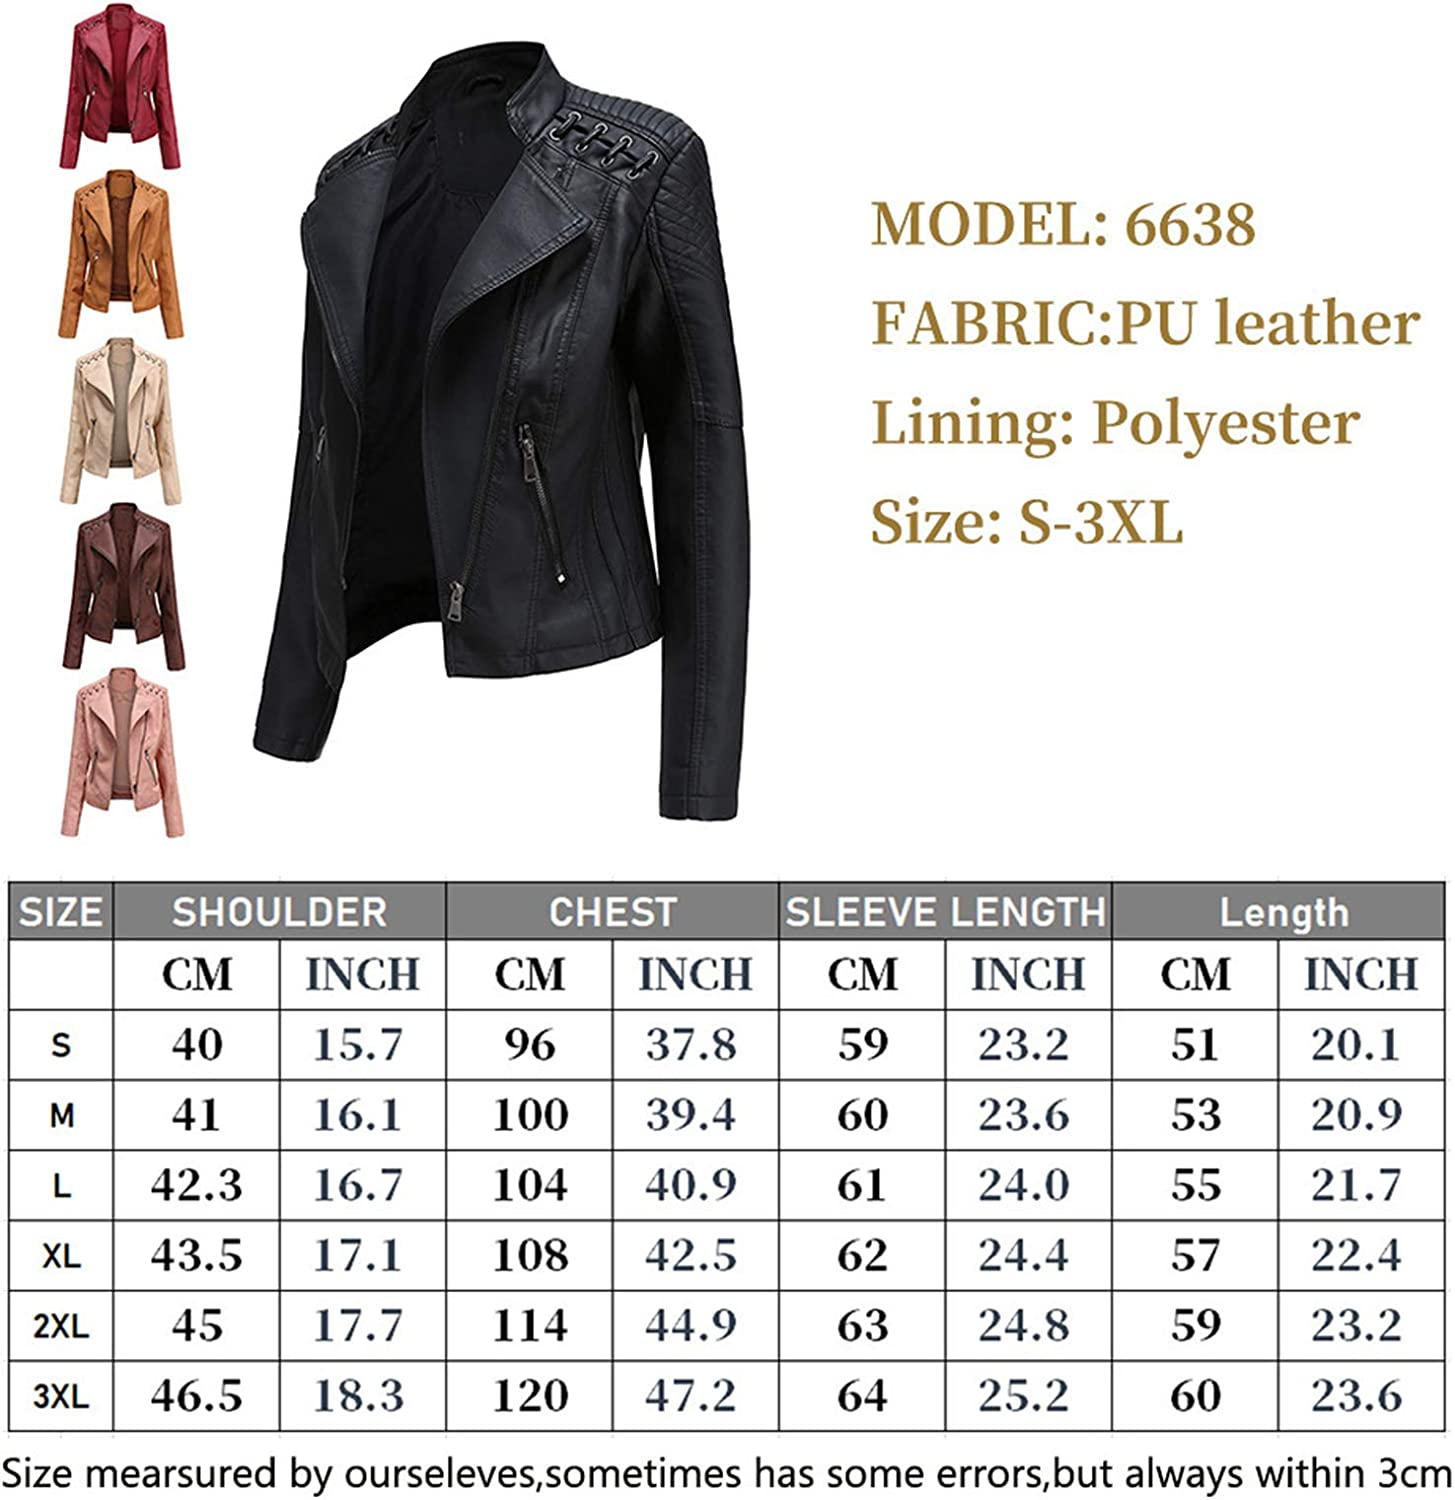 WEIXINMWP Fashion Leather Jacket Women Spring and Autumn Stand Collar Collar Motorcycle Rider Coat pu Jacket Coat high Street Jacket Street Clothing,Red,S